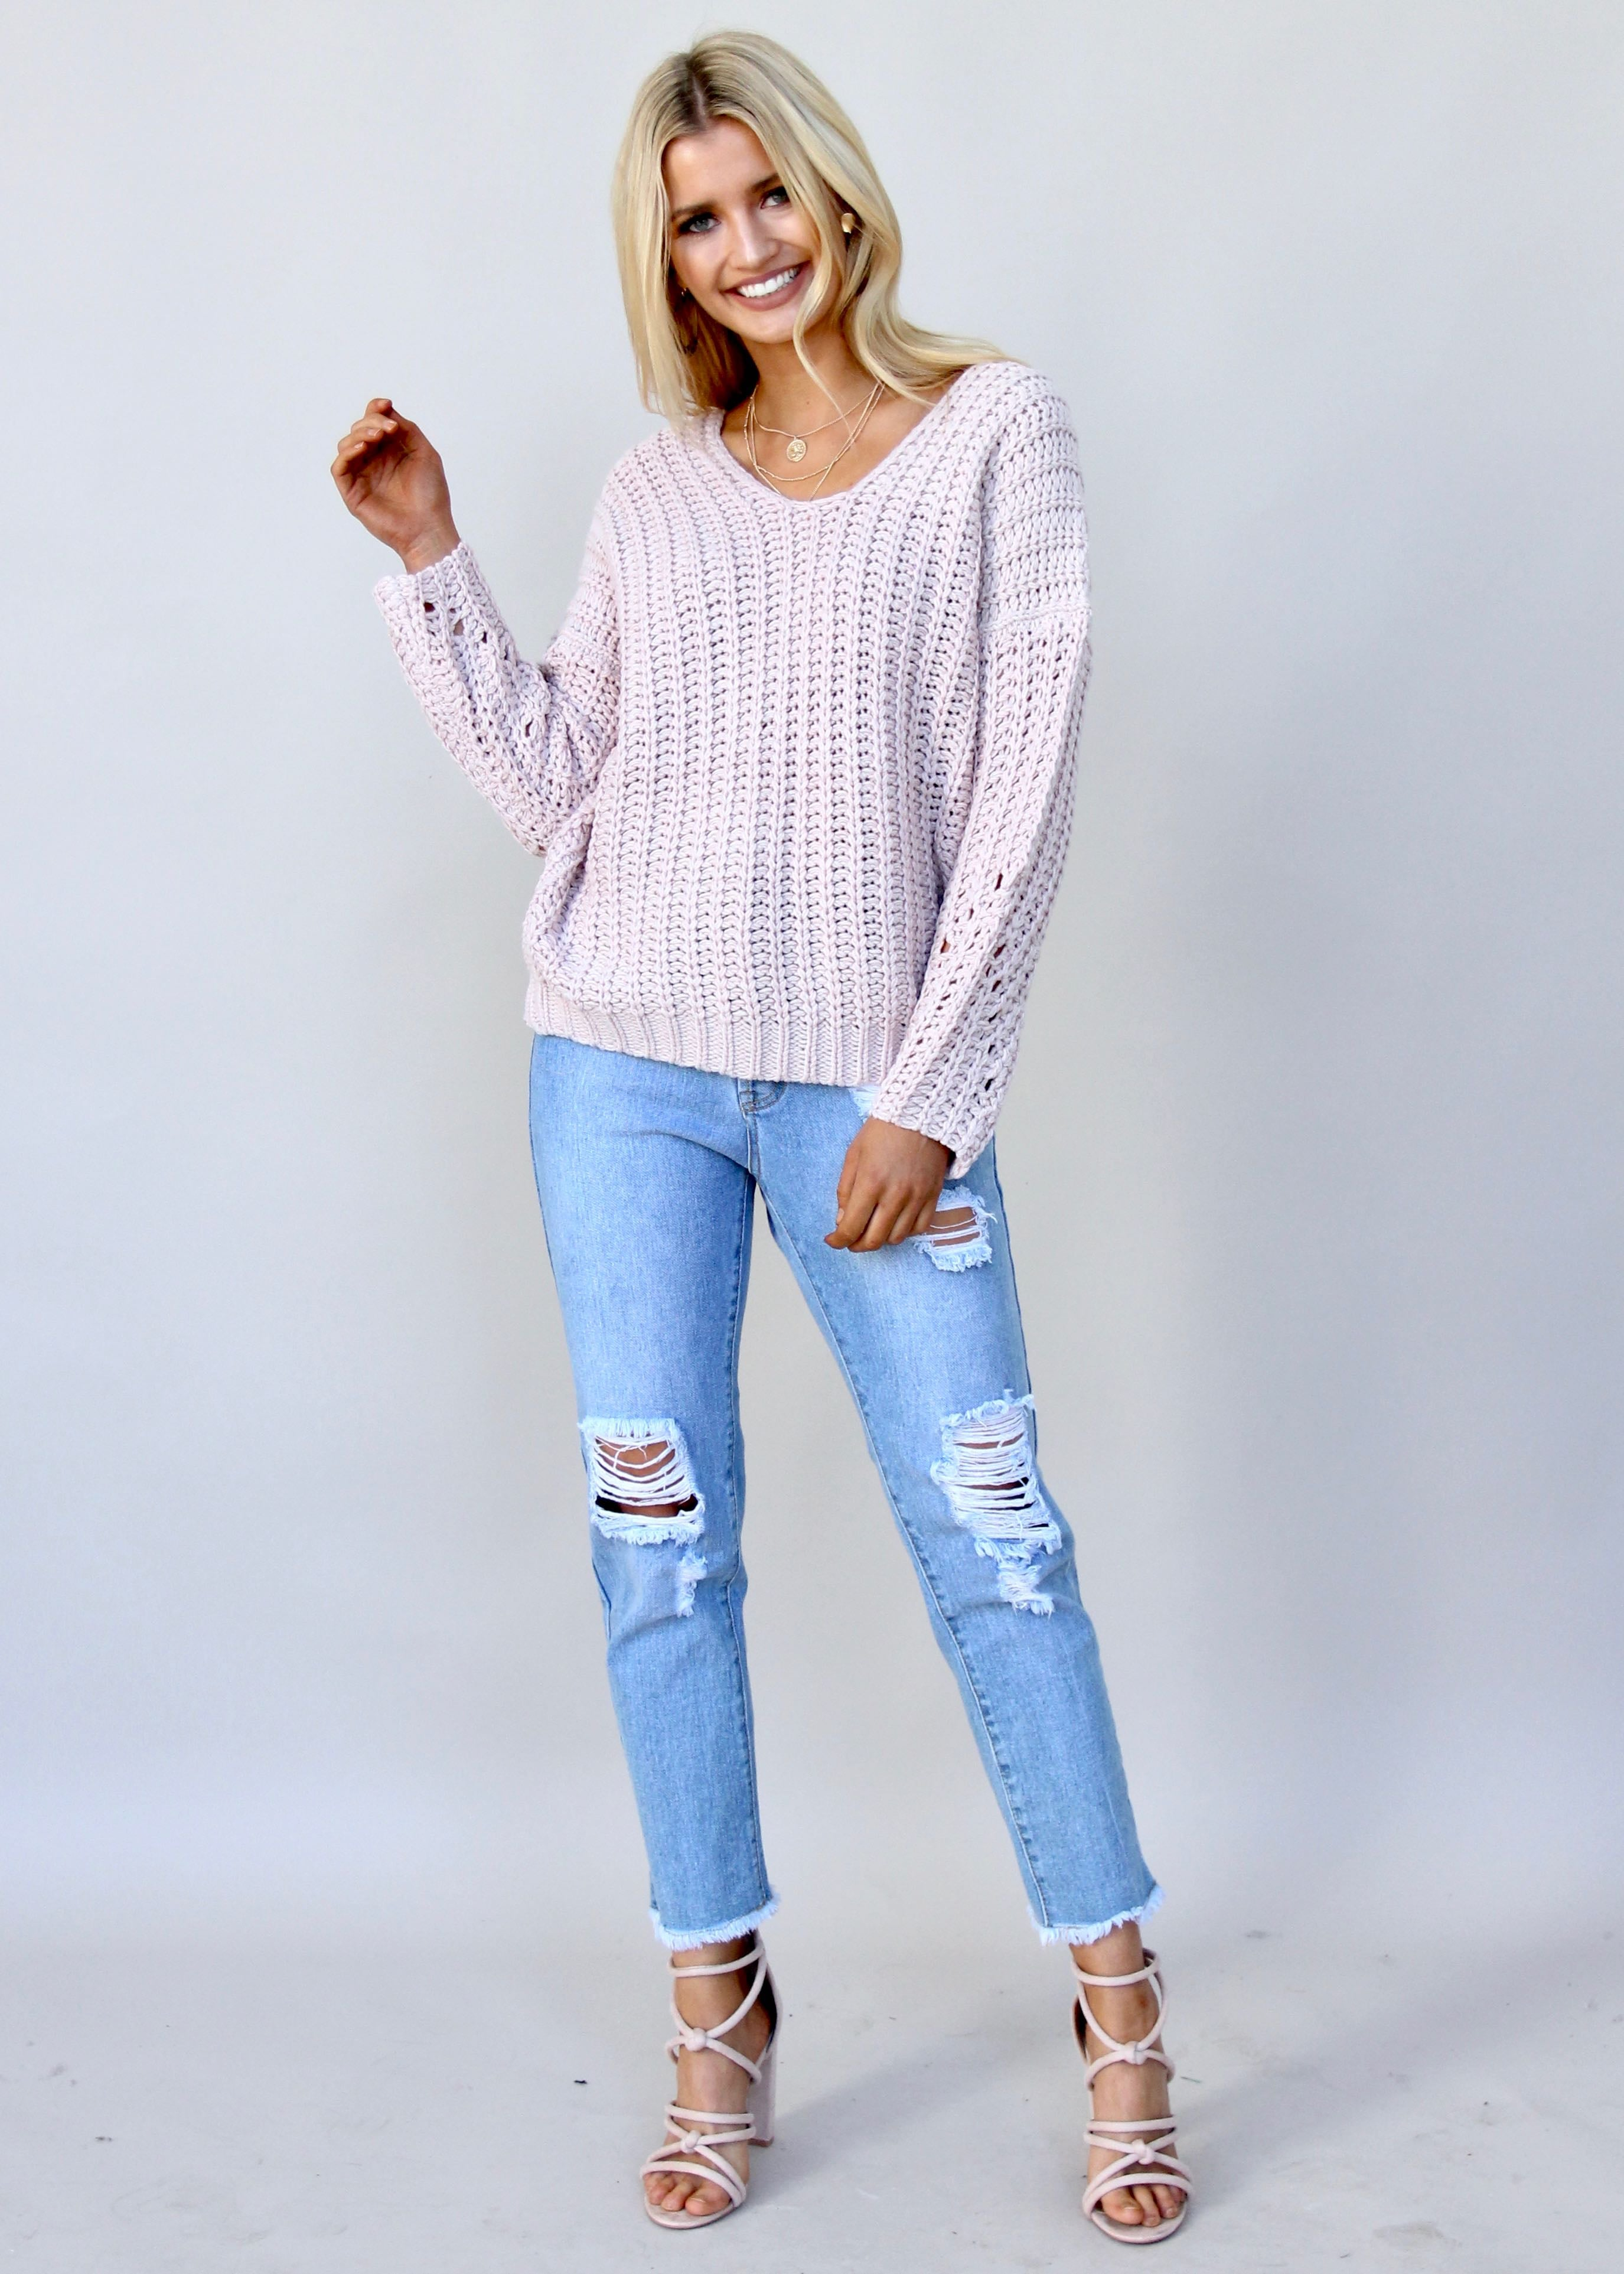 The Next Move Knit Sweater - Dusty Pink